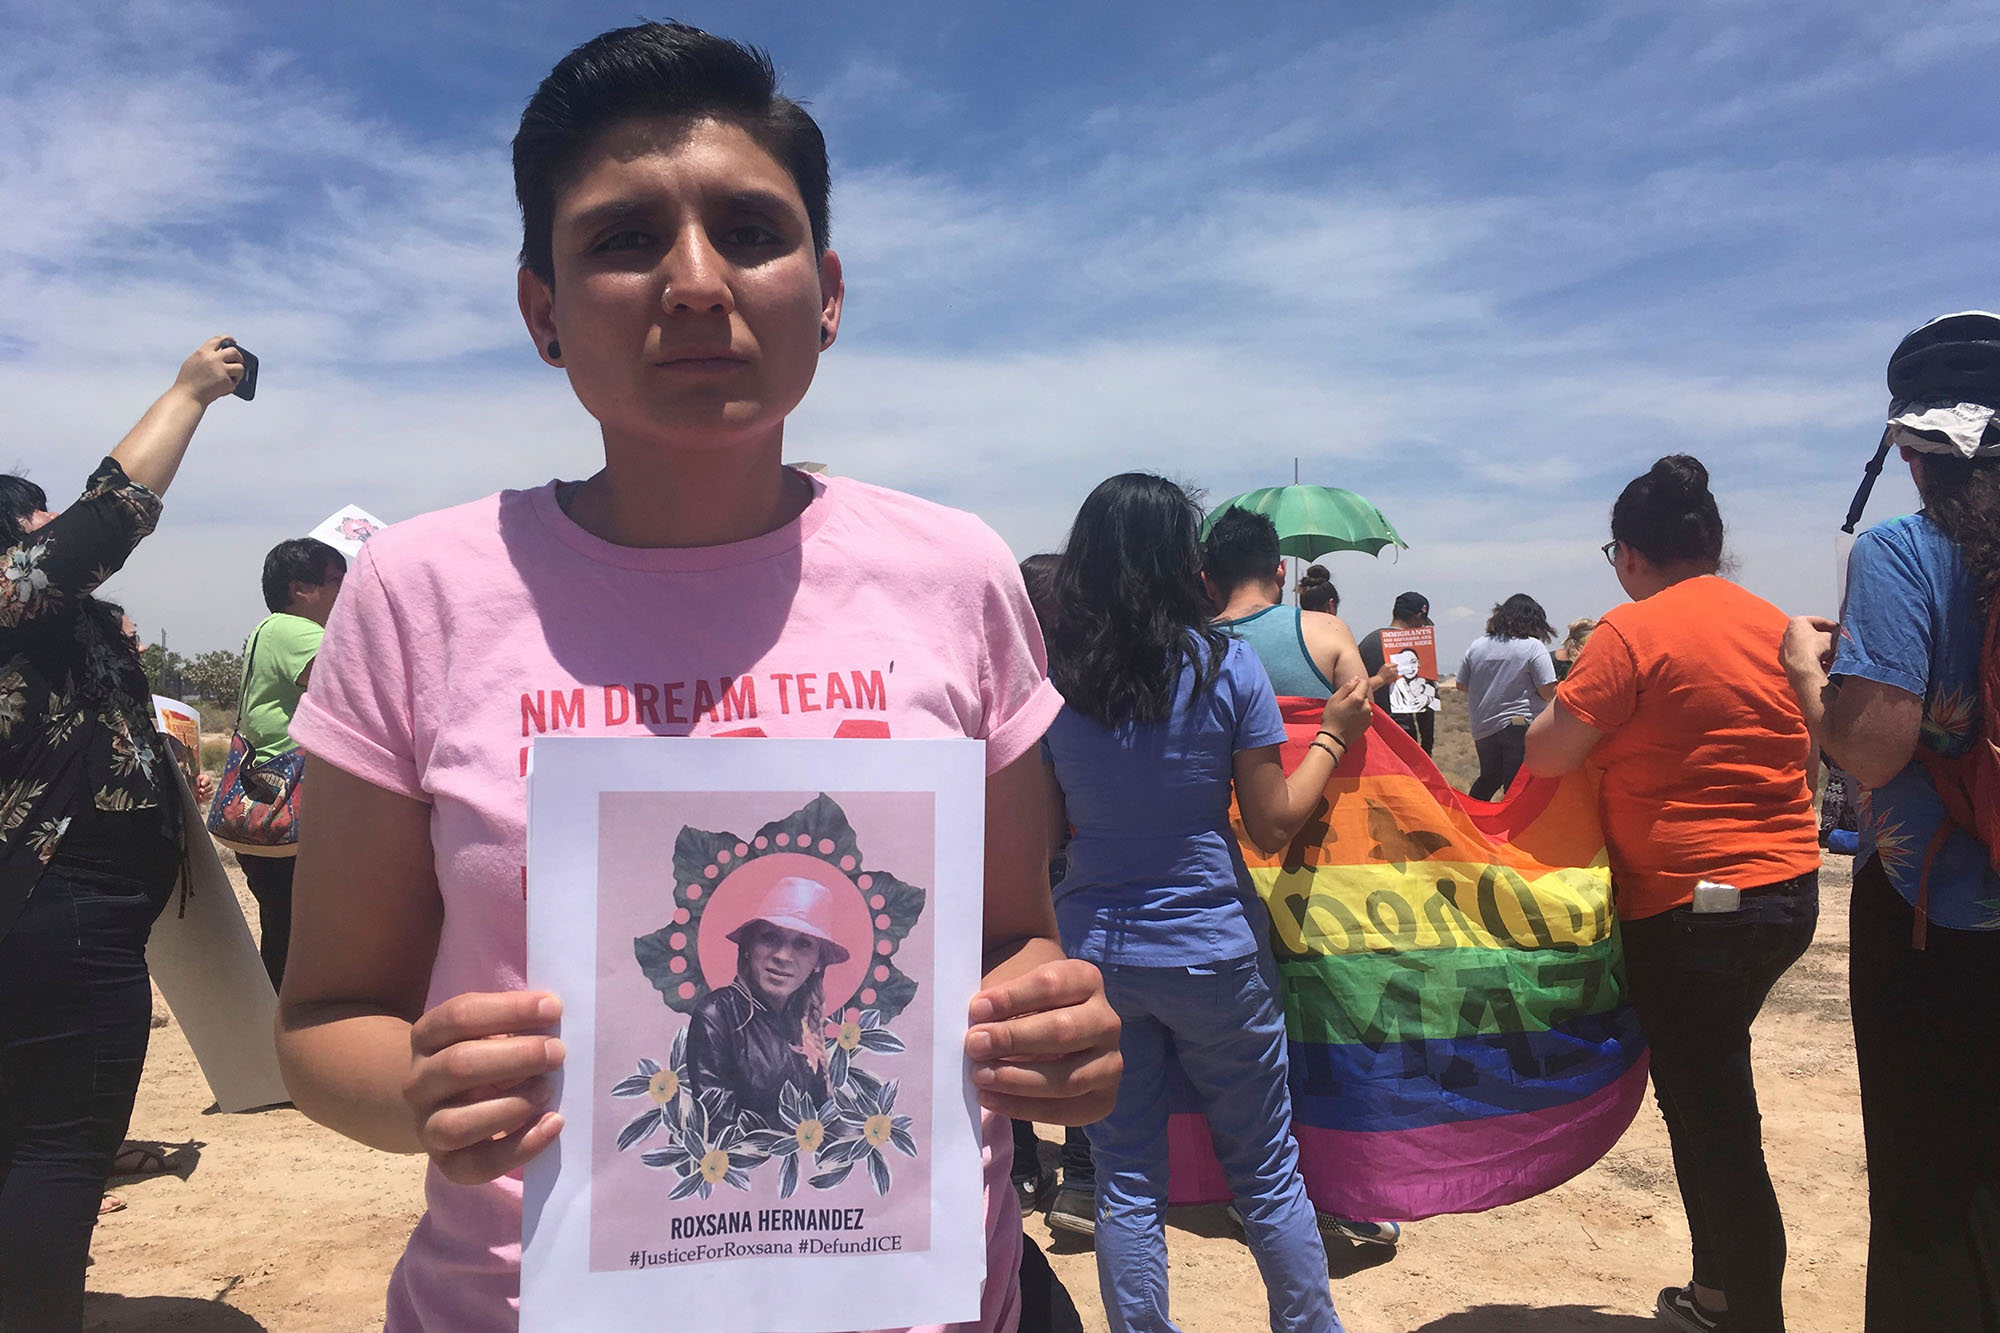 Transgender women have died in ice custody, where is the outrage